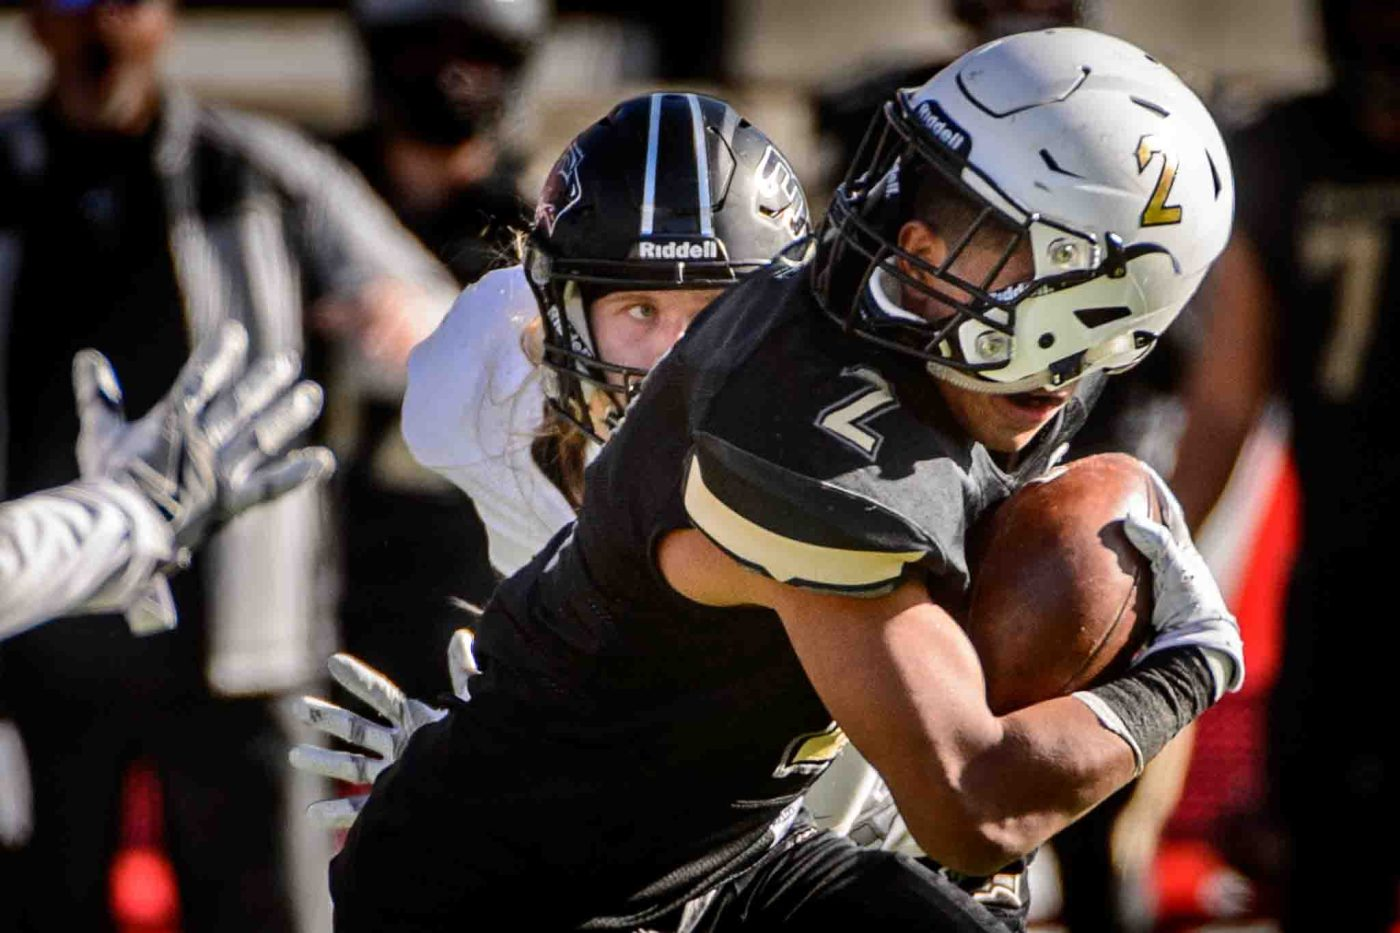 Desert Hills' Nephi Sewell runs after a face mask penalty spun his helmet as Desert Hills faces Pine View in the Class 3AA high school football state championship at Rice-Eccles Stadium in Salt Lake City